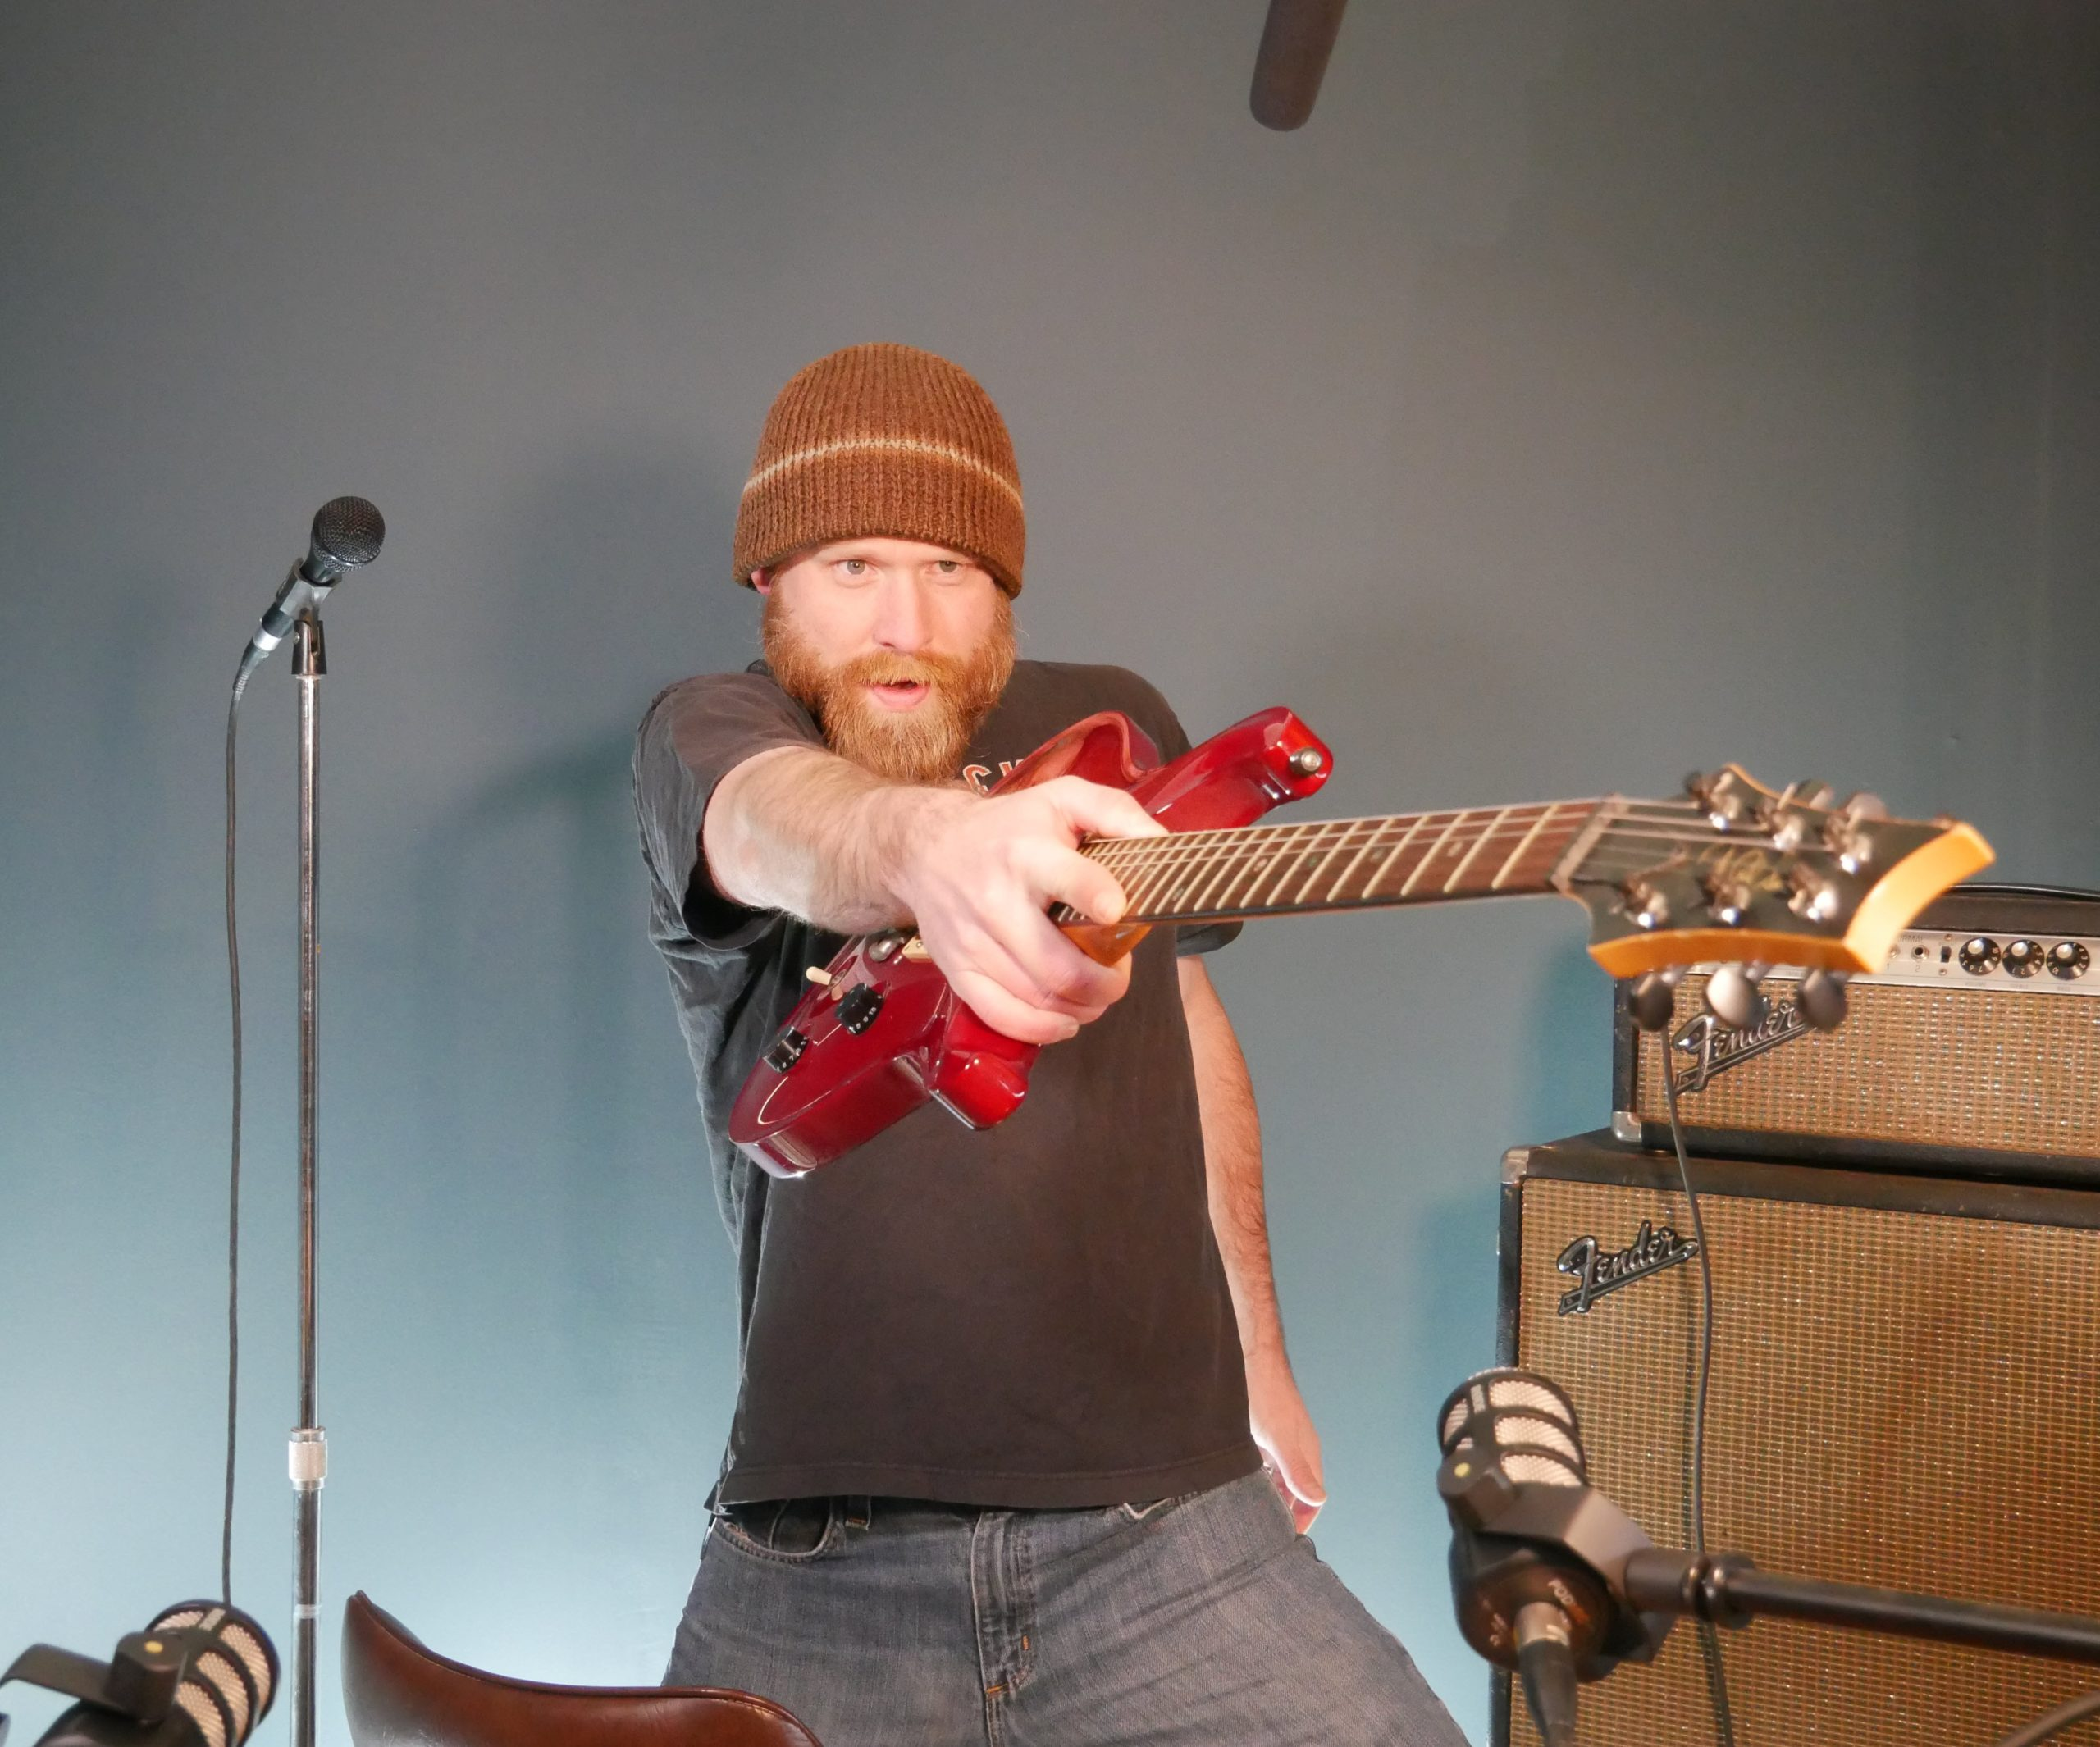 josh from microphone basics with his guitar